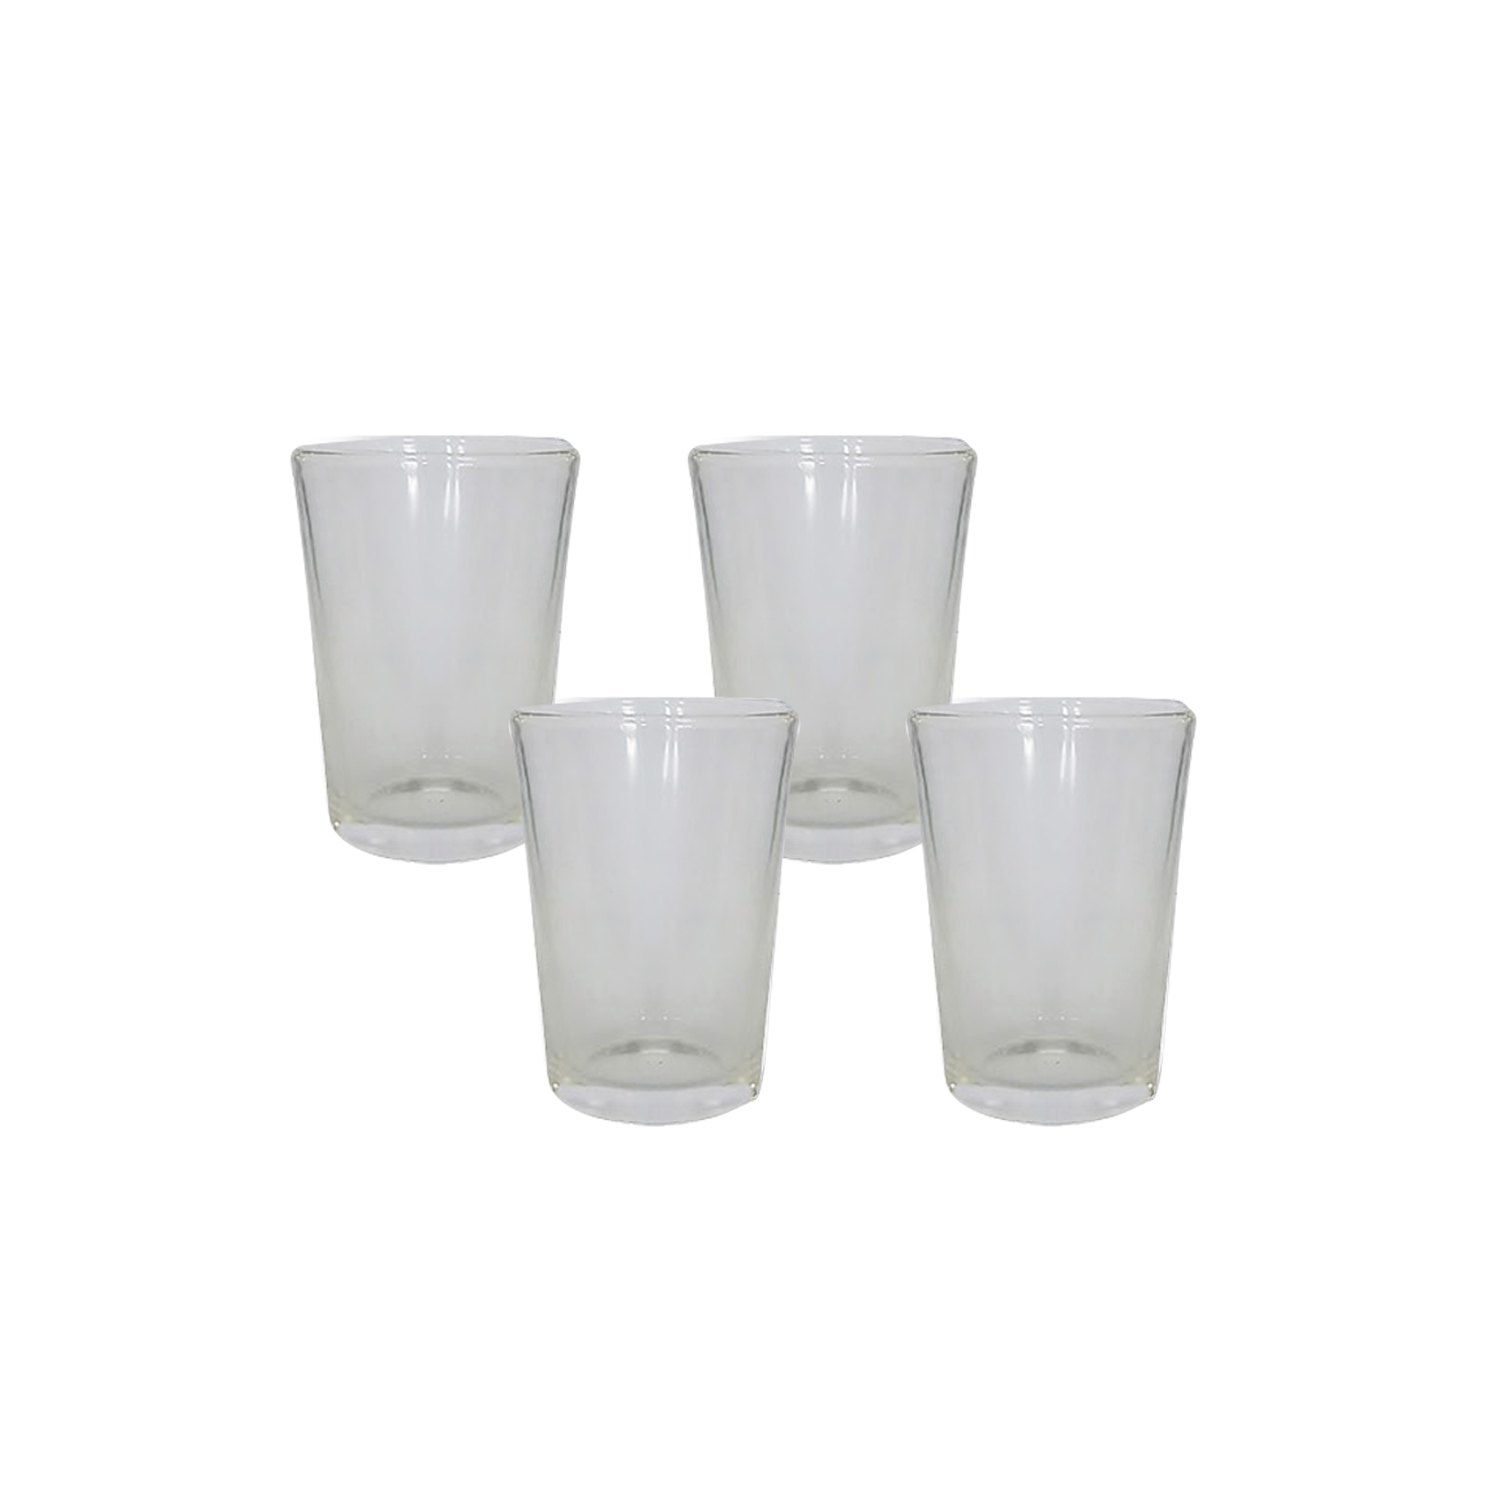 Glass Tumbler Taki Size  (4 FOR) #31908003115